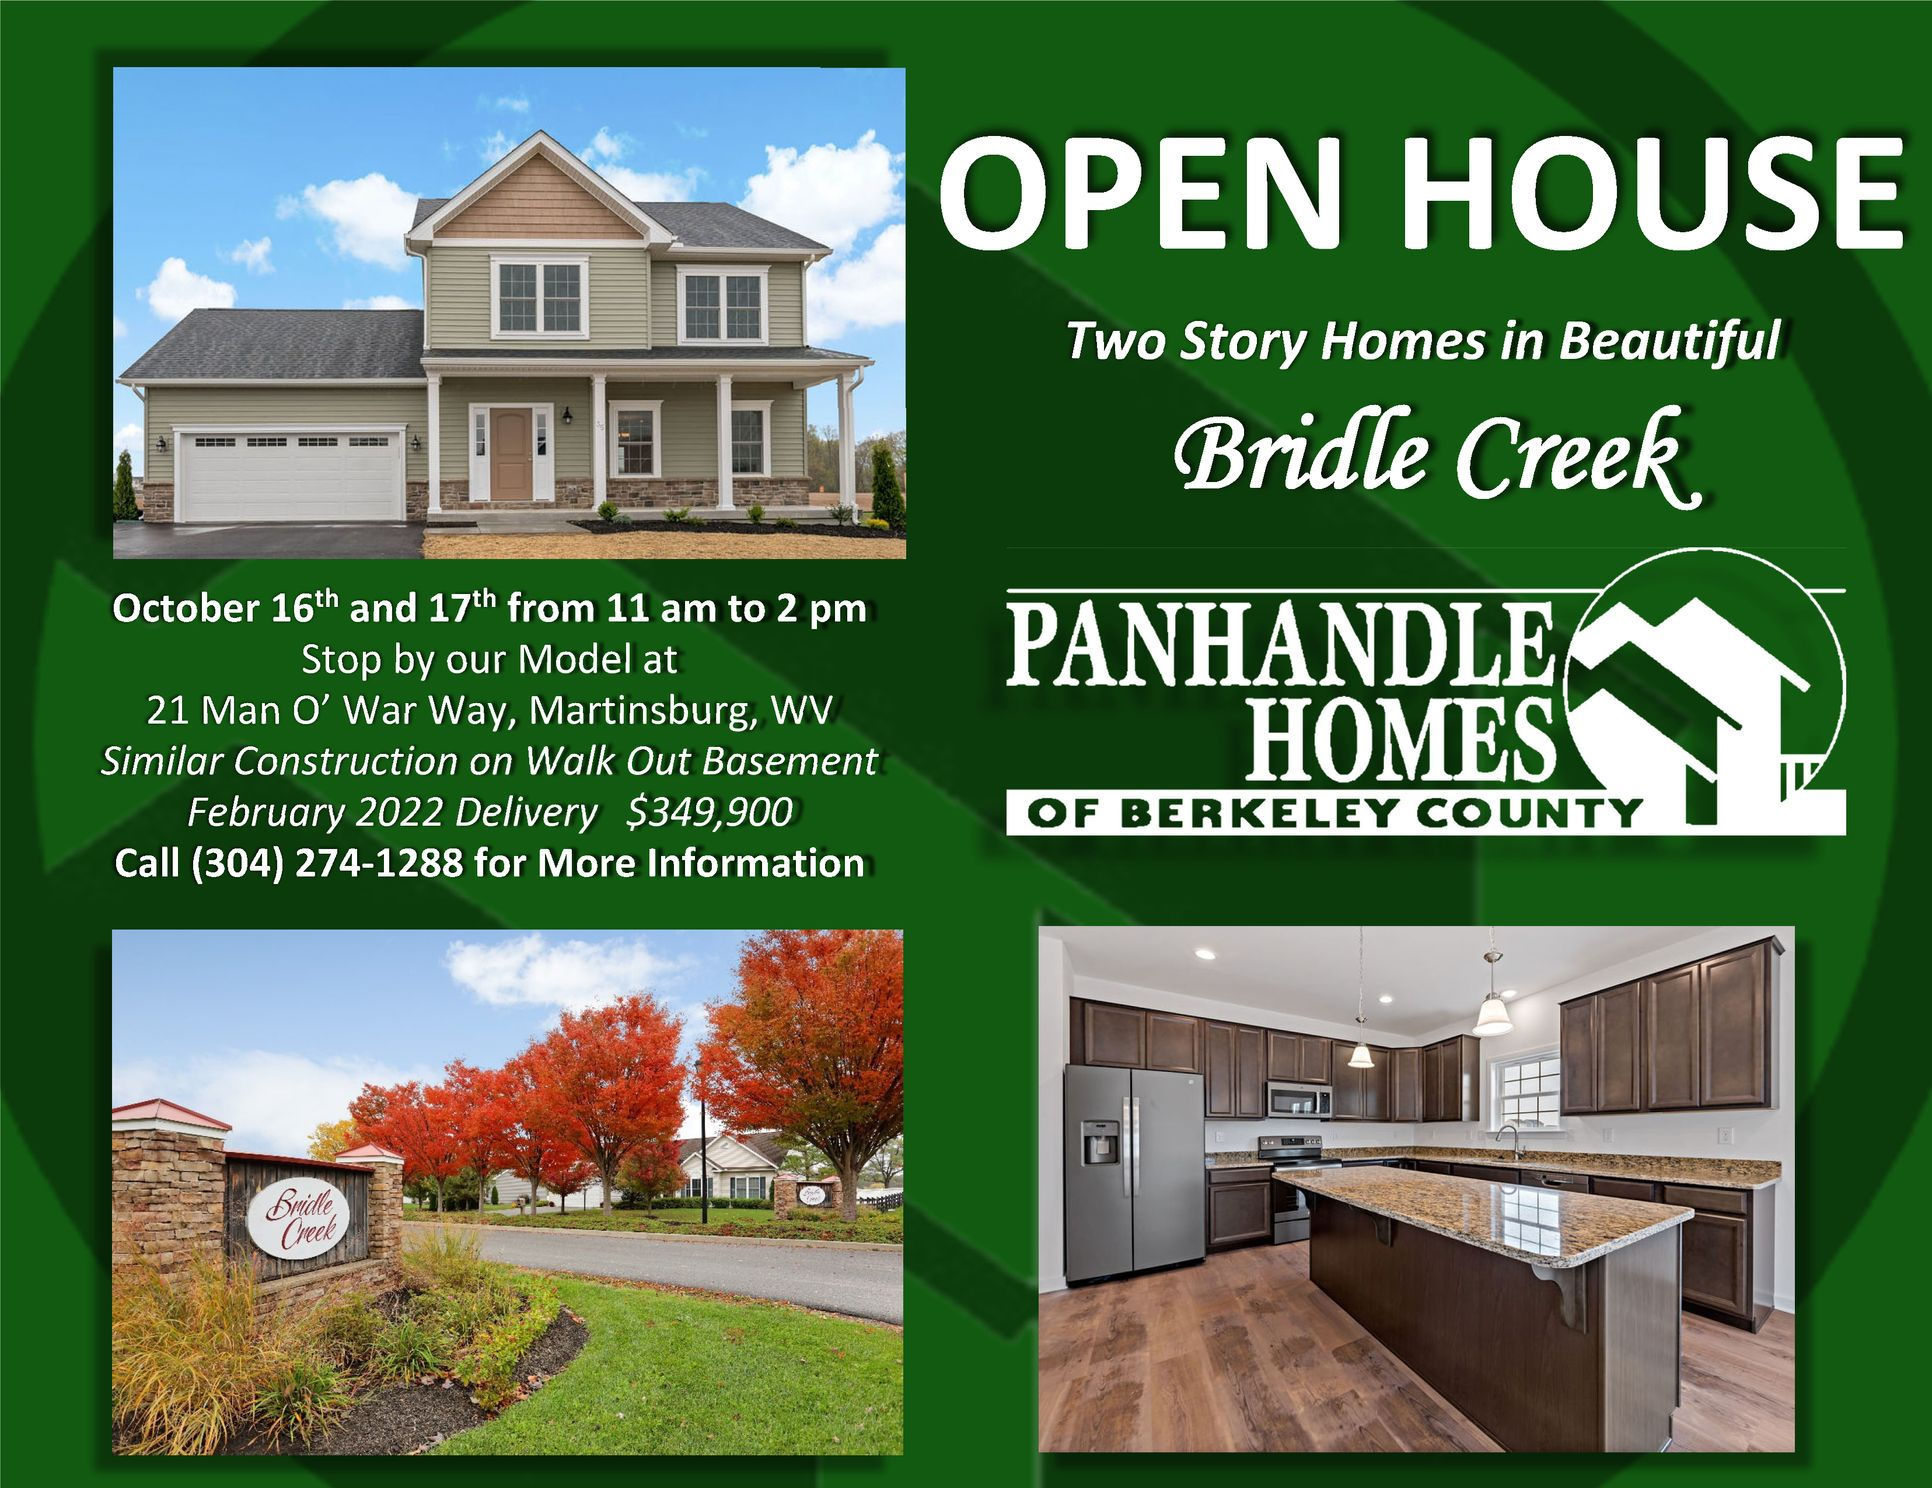 Open House - Coming Soon!